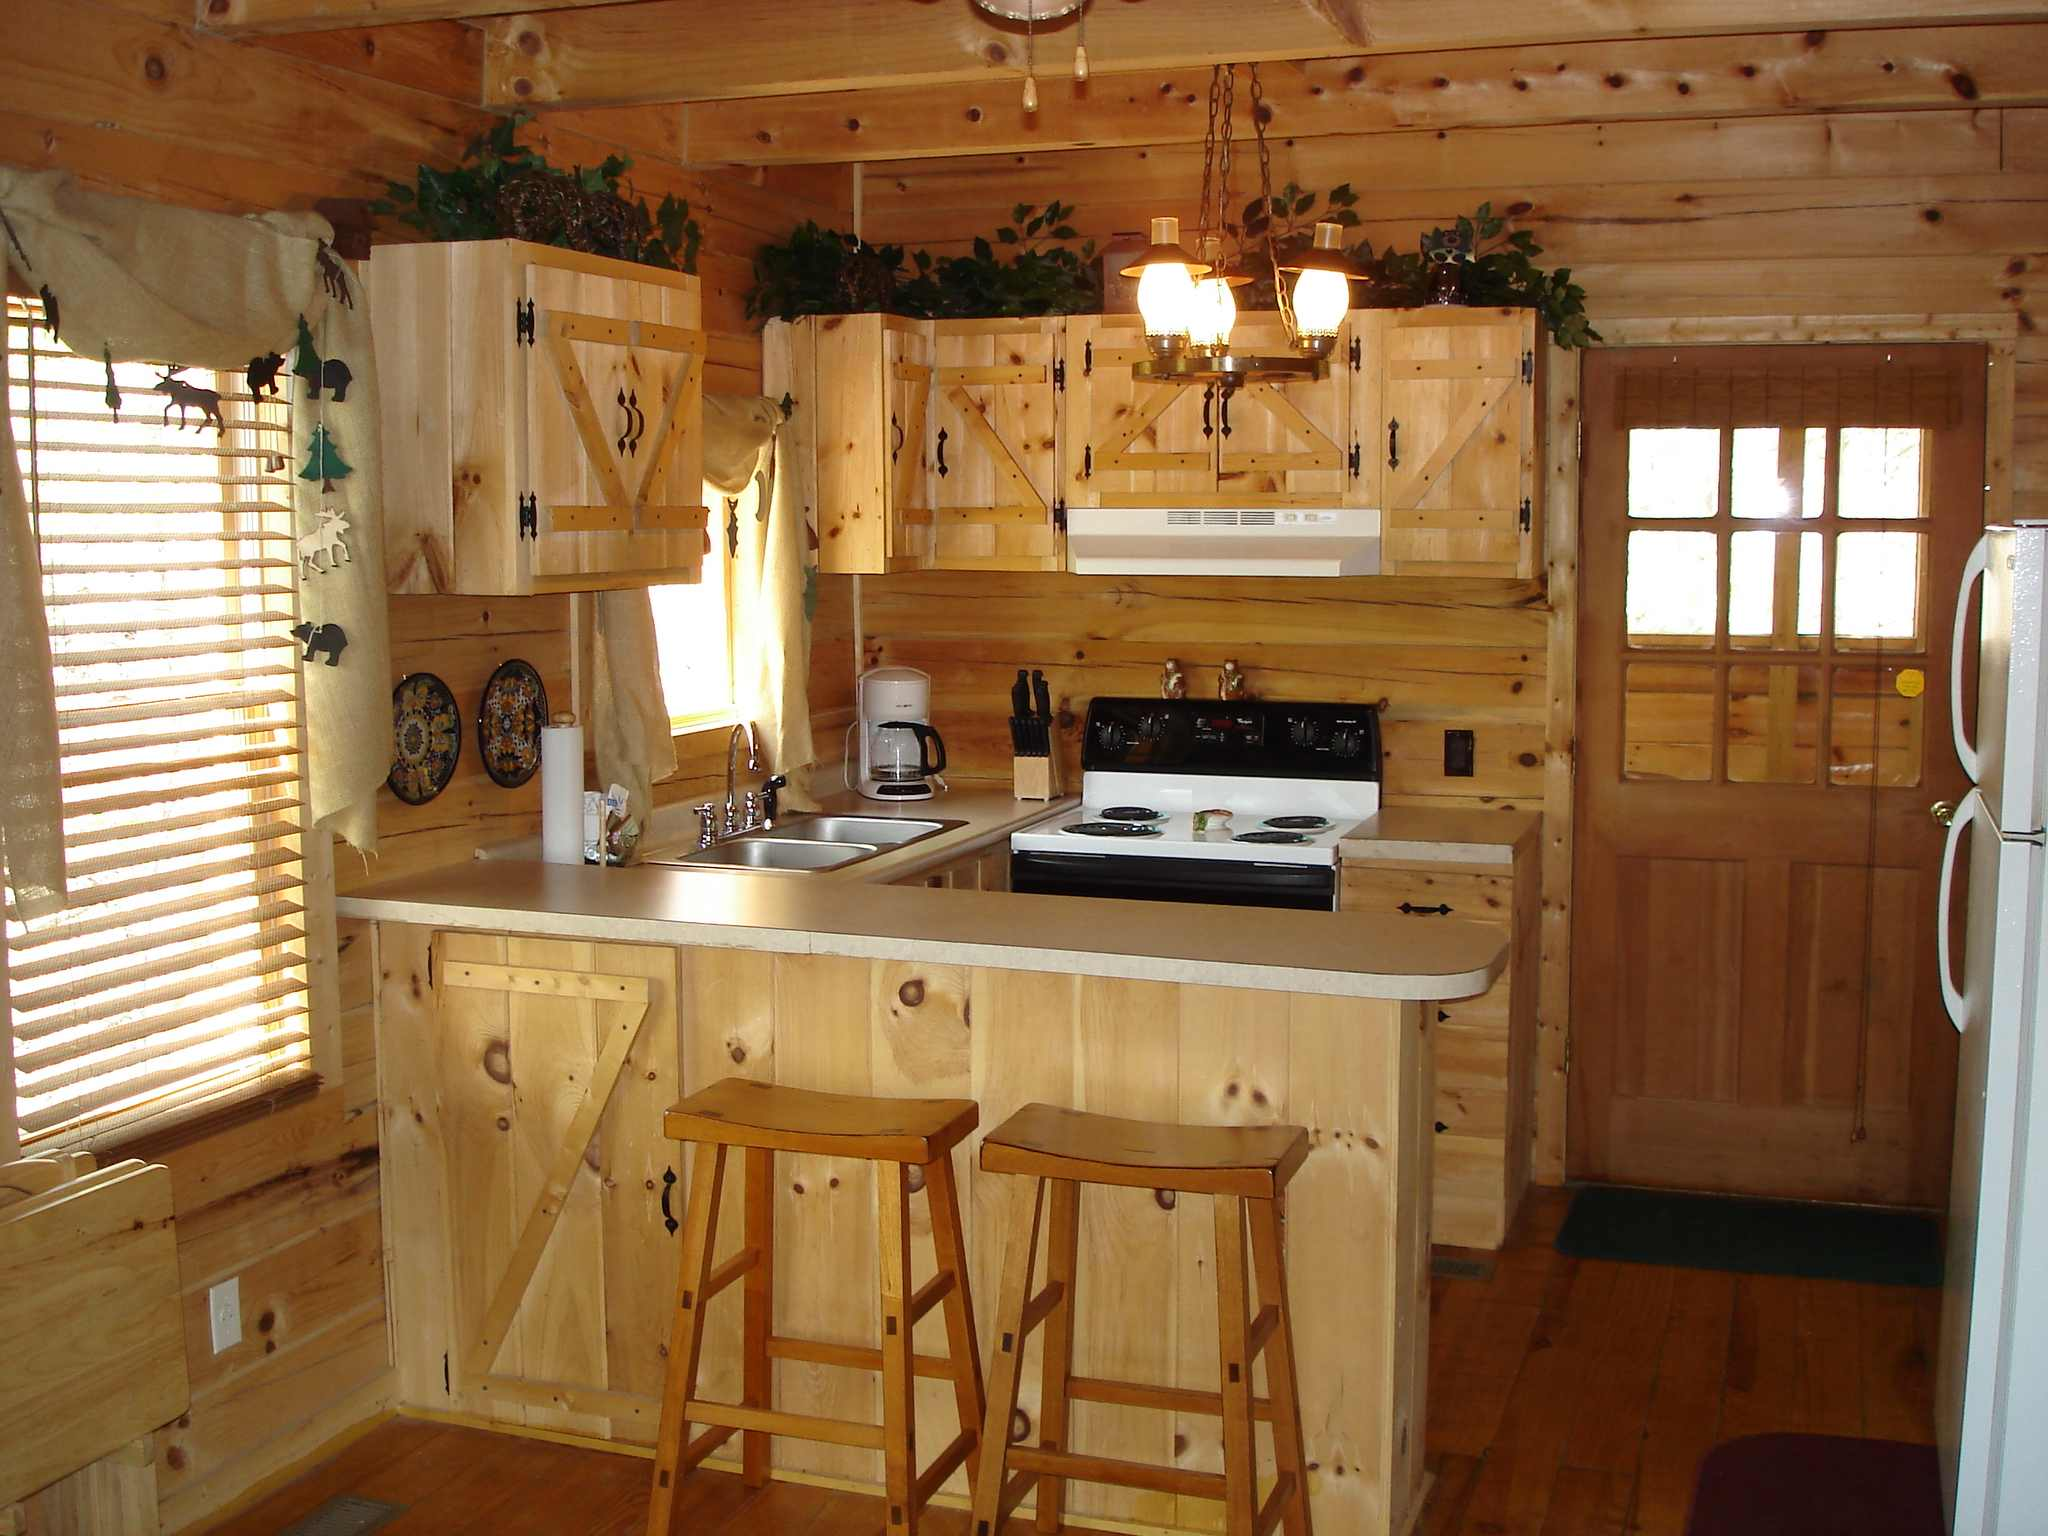 kitchen remodel on Kitchen Remodel Designs: Rustic Kitchen Photos